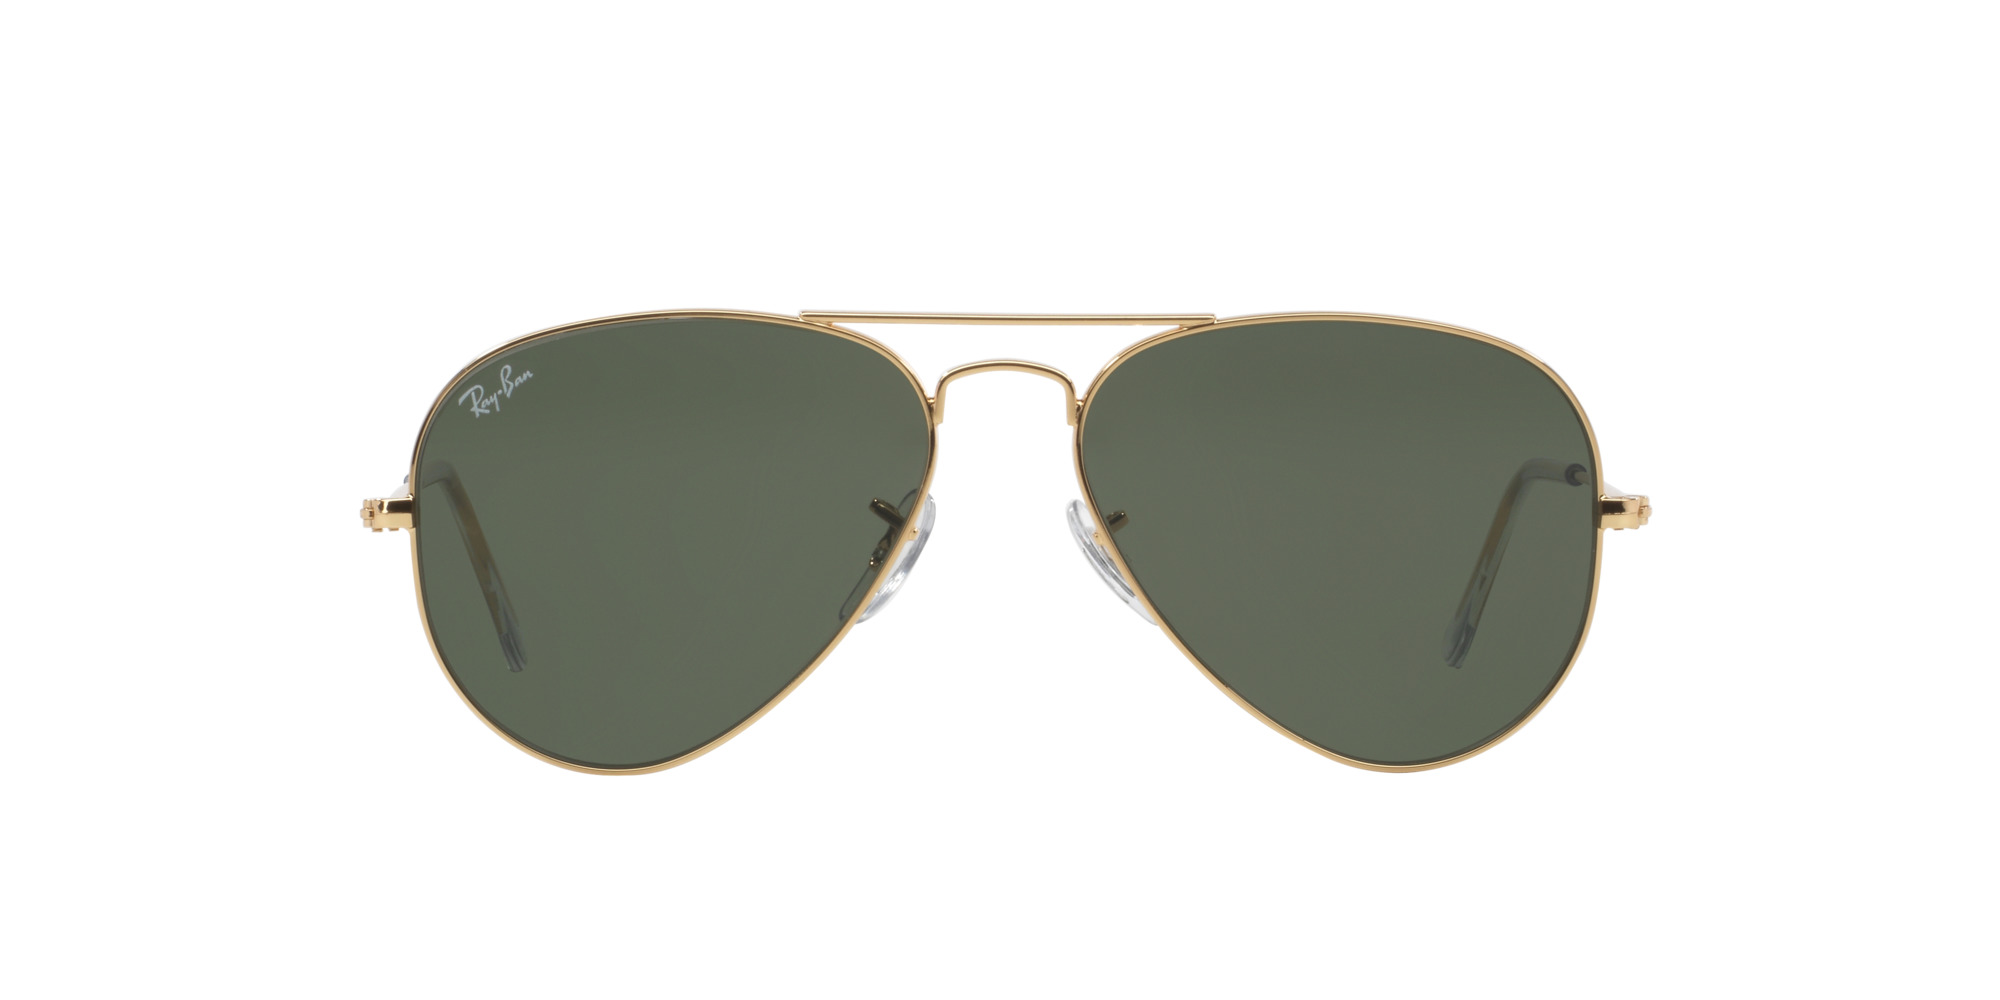 RAY-BAN AVIATOR RB 3025 W3234 55mm-360